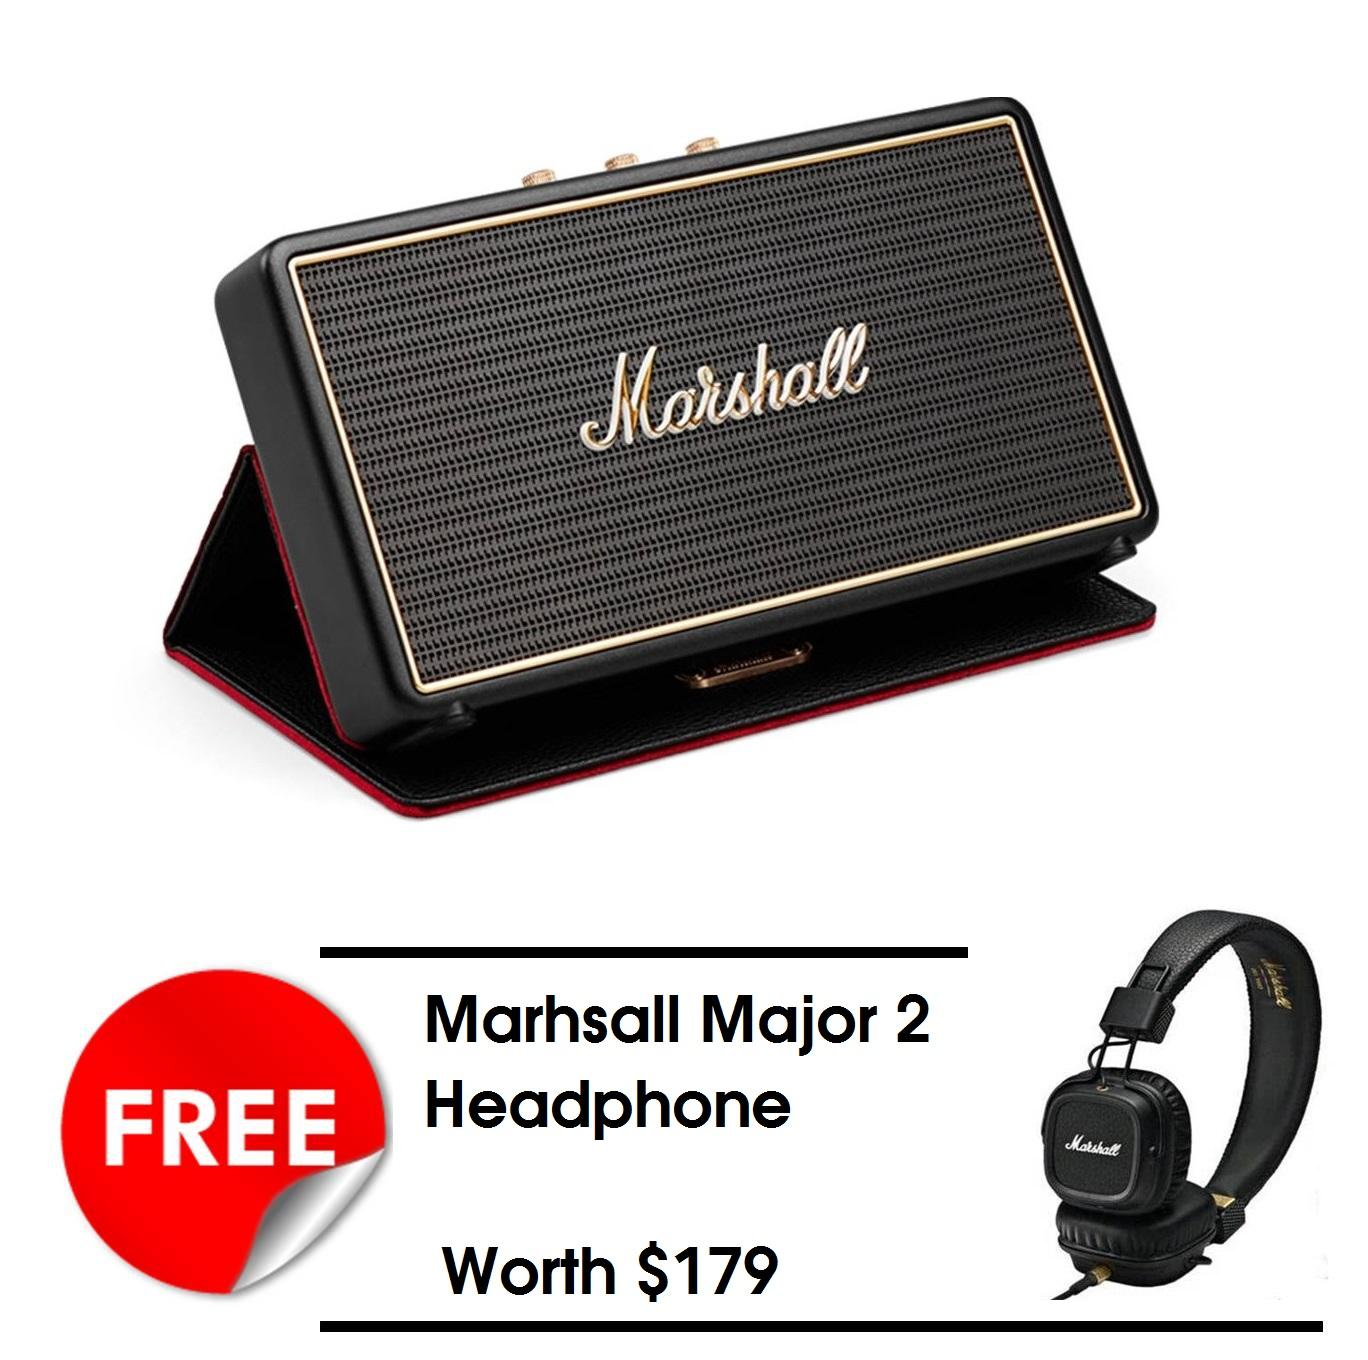 Compare Marshall Portable Bluetooth Speaker Stockwell With Flipcover Black Free Marshall Major 2 Headphone Prices